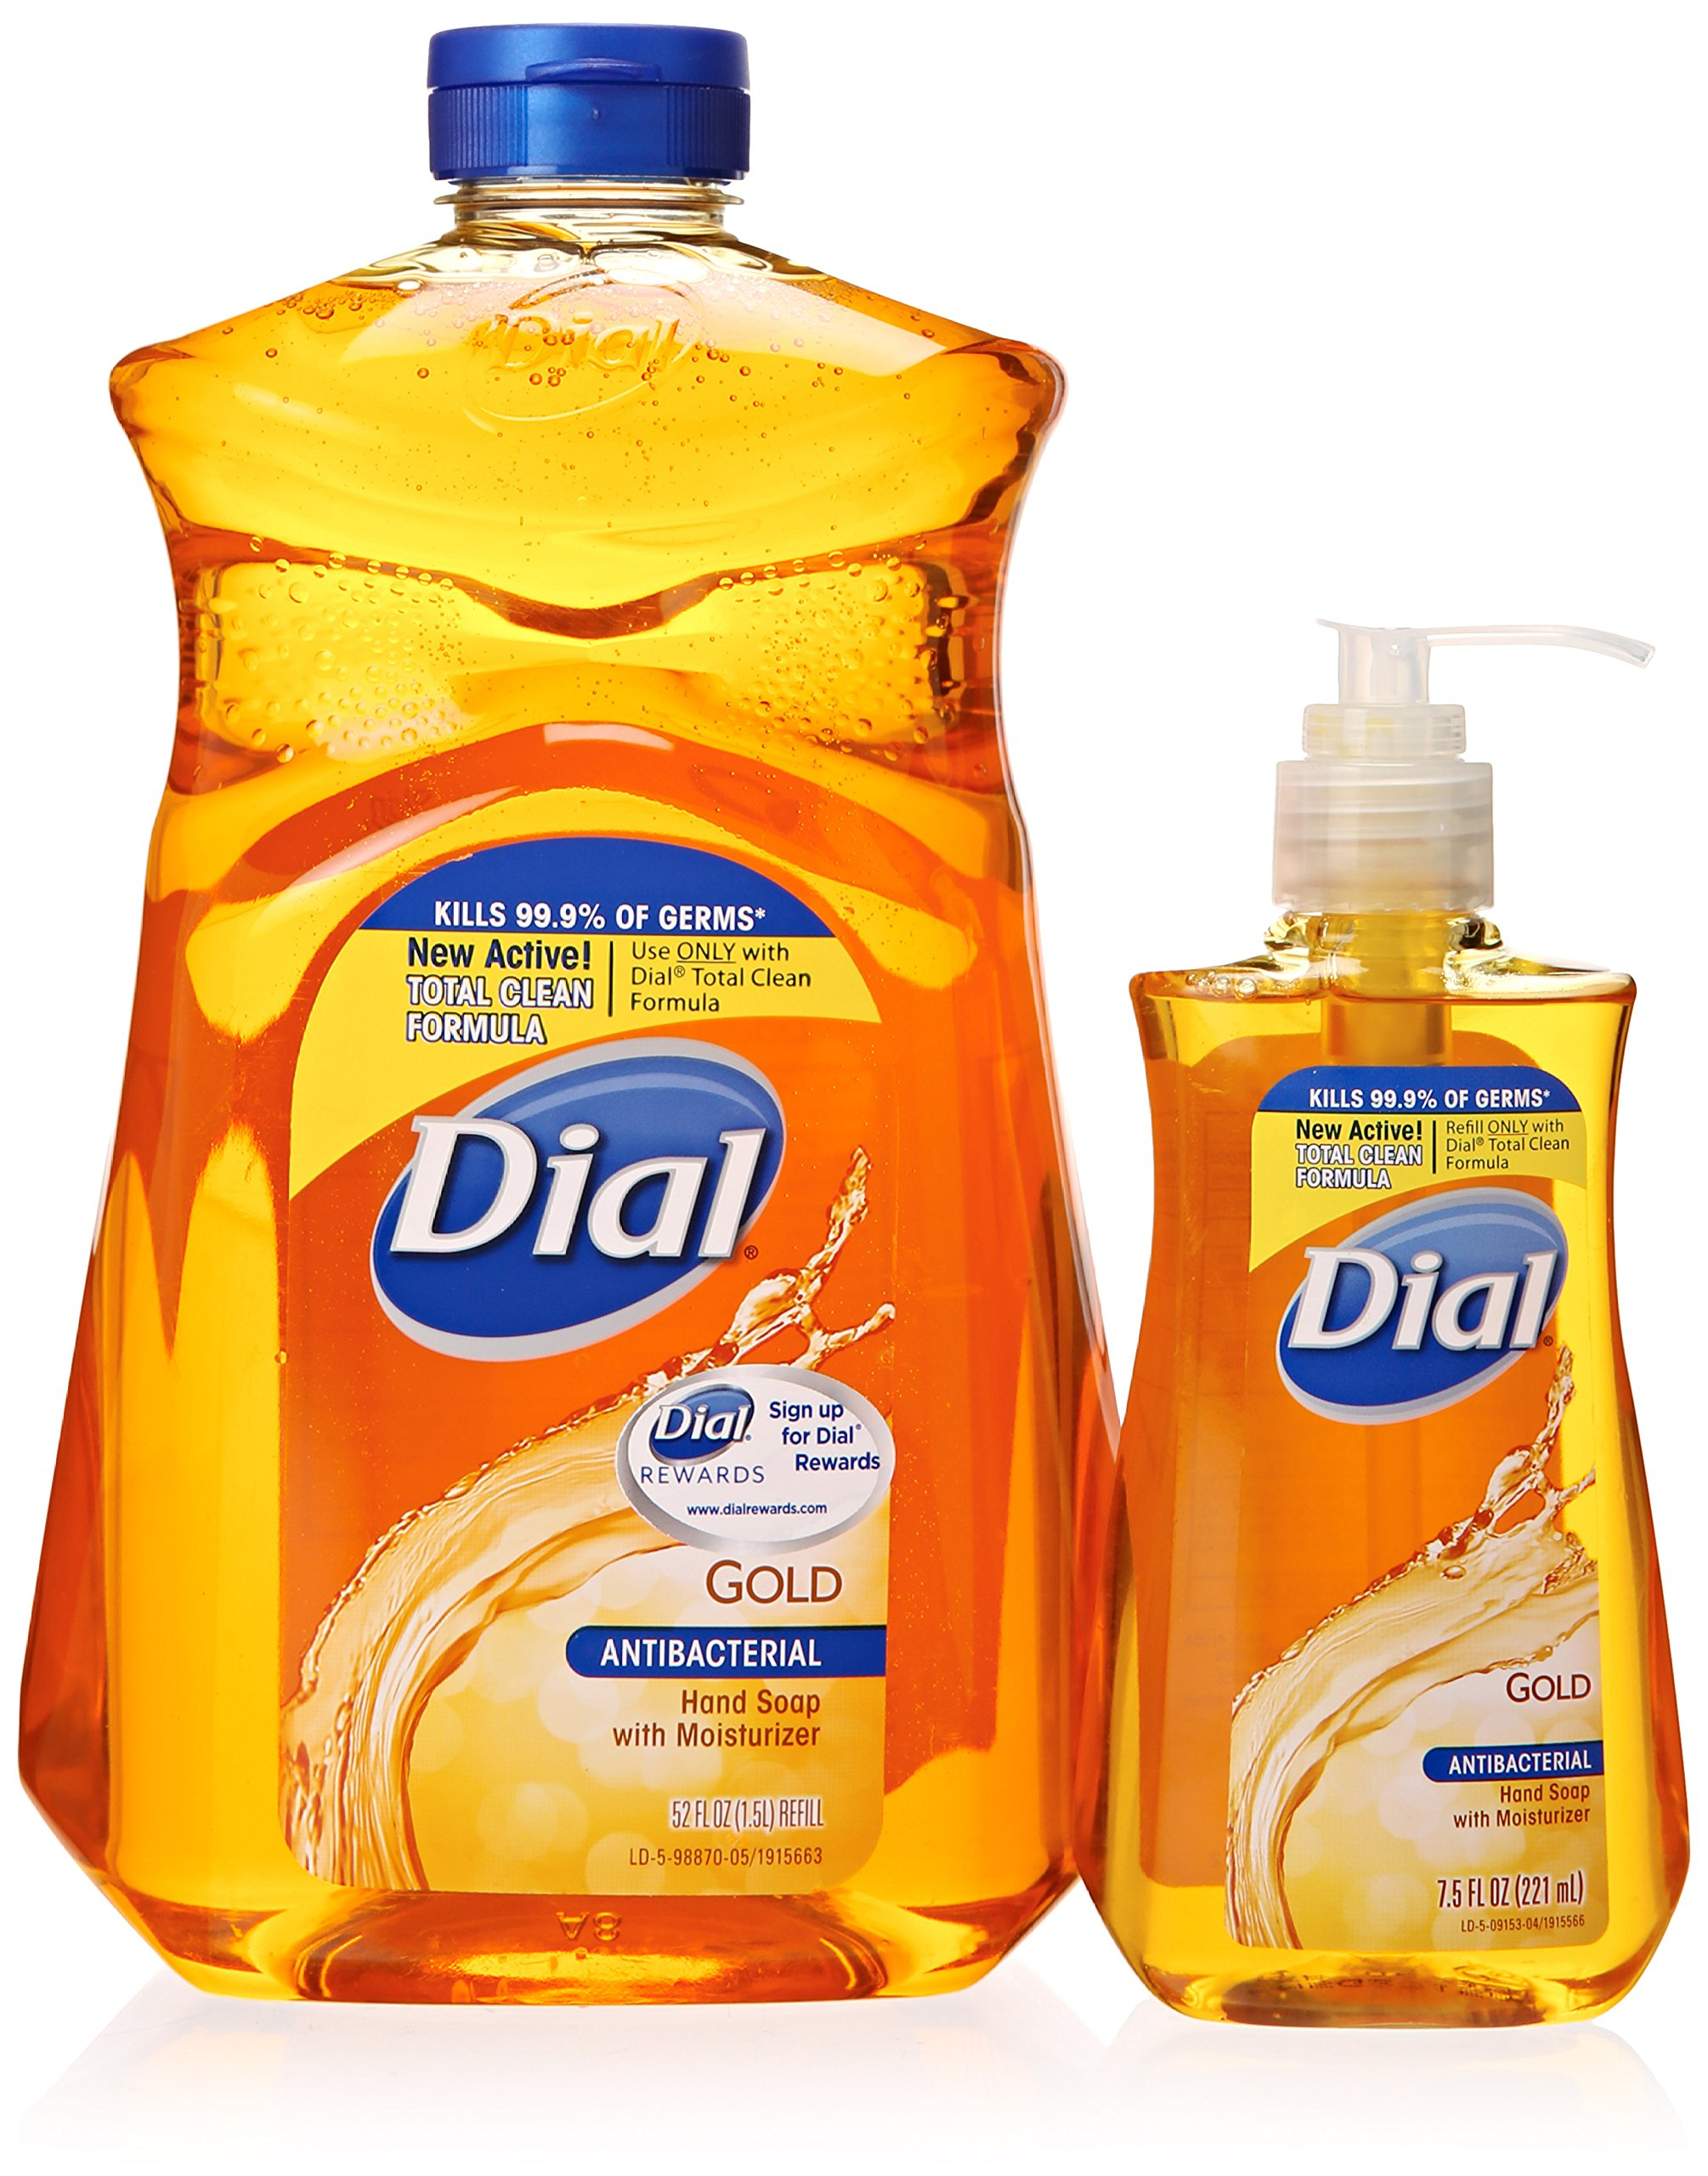 Dial Gold Antibacterial Liquid Soap with Moisturizer, 7.5 Oz Pump Bottle + 52 Oz Refill